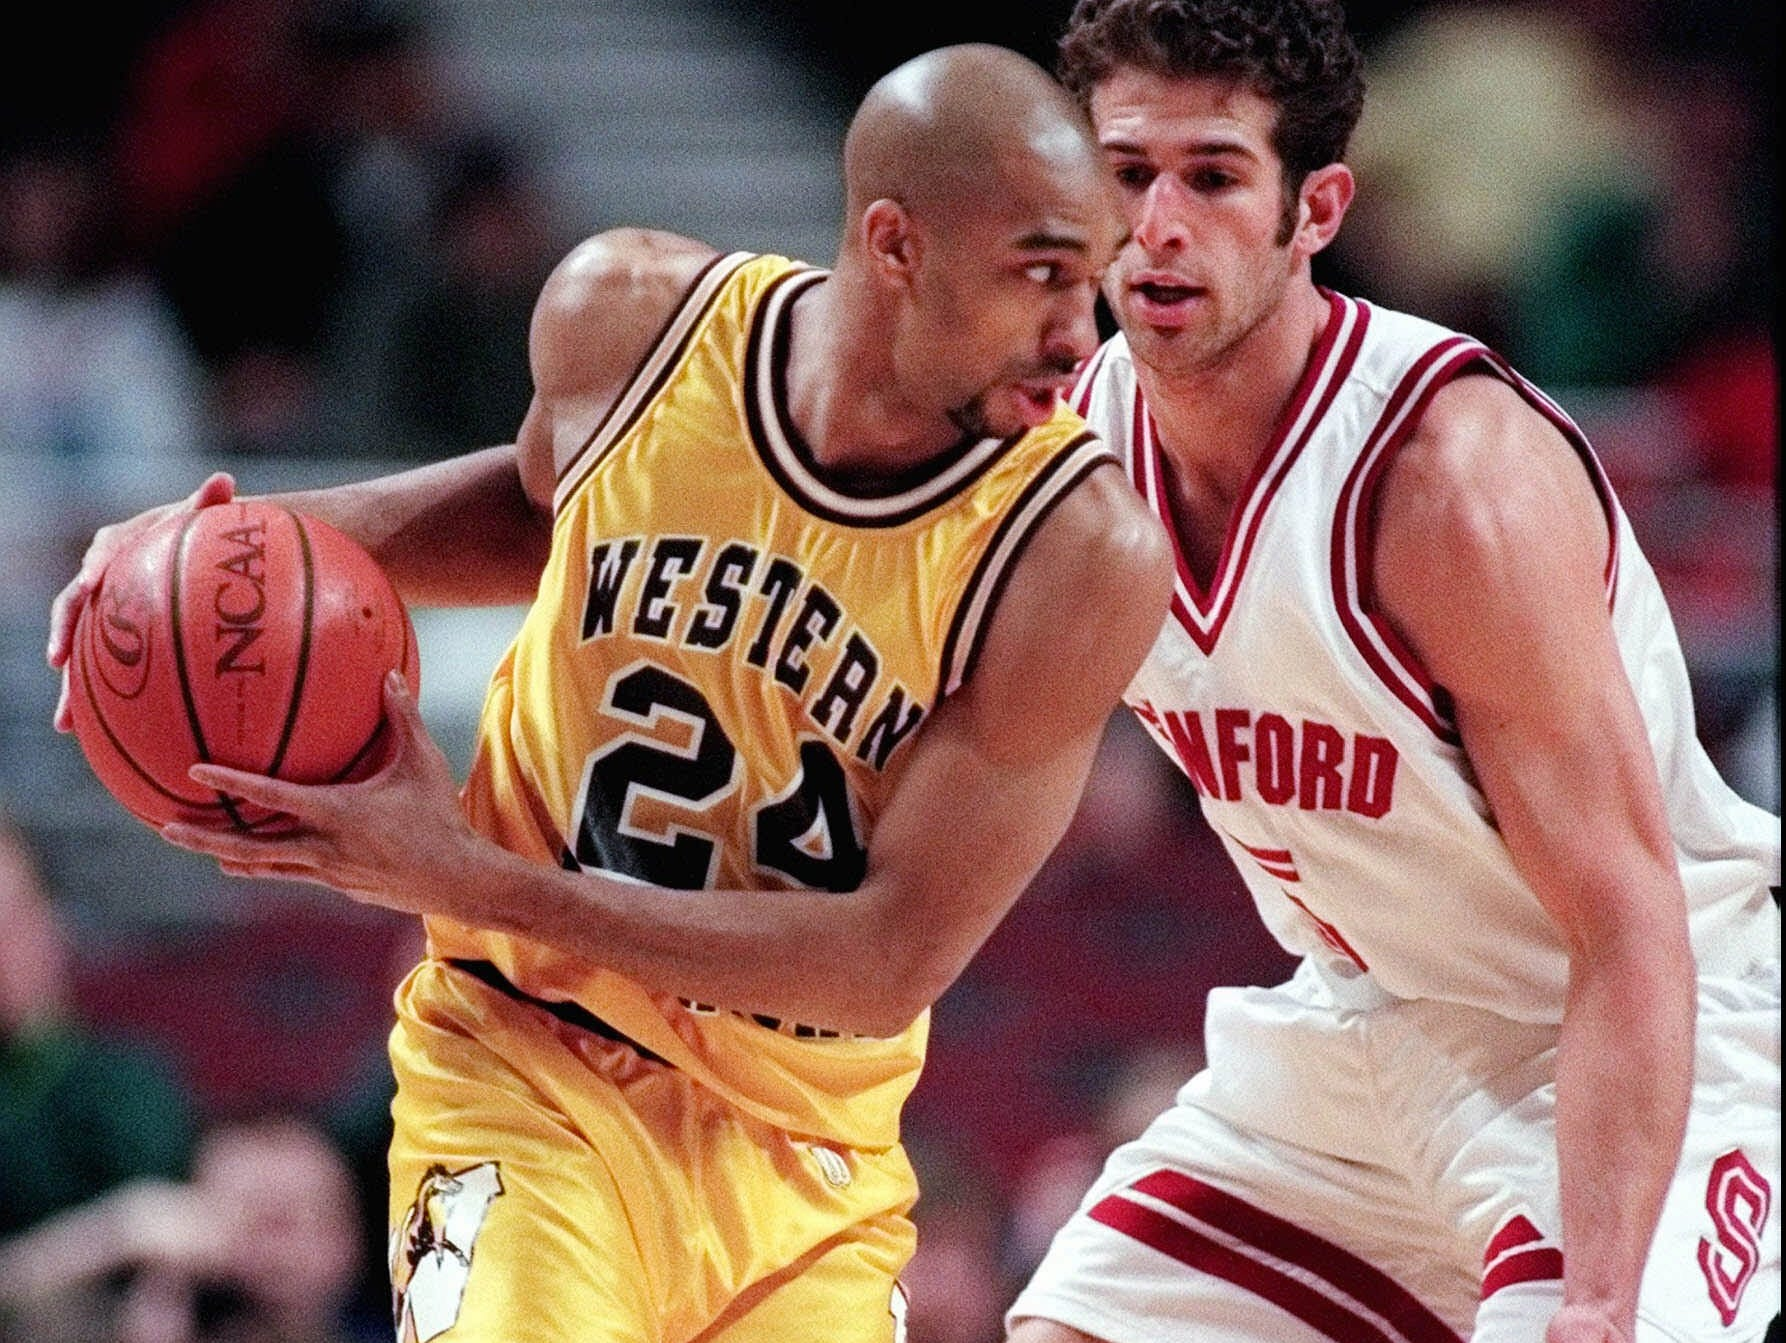 Saddi Washington helped Western Michigan reach the second round of the NCAA tournament in 1998.